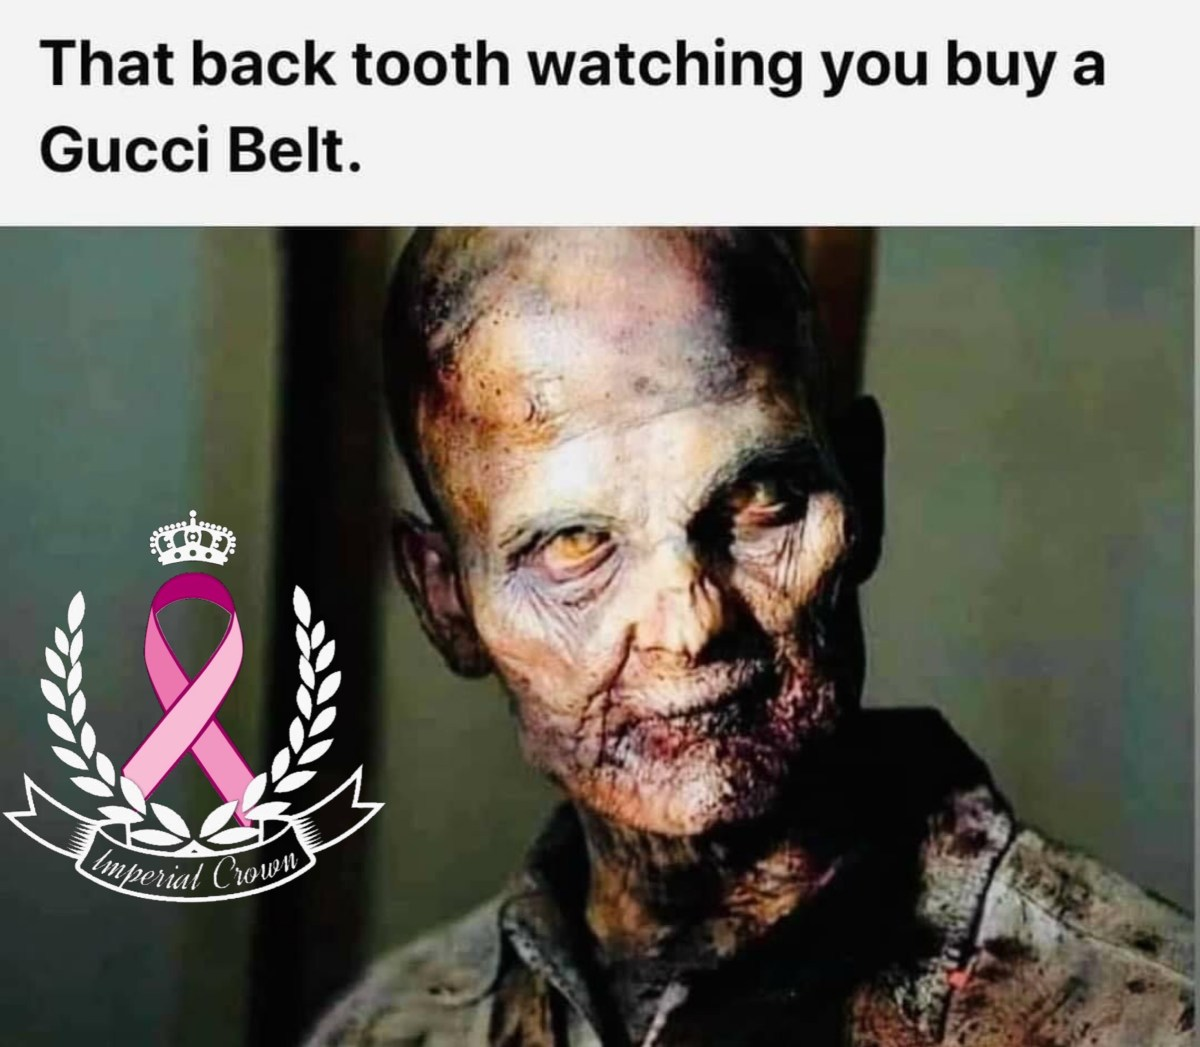 That back tooth watching you buy a Gucci belt